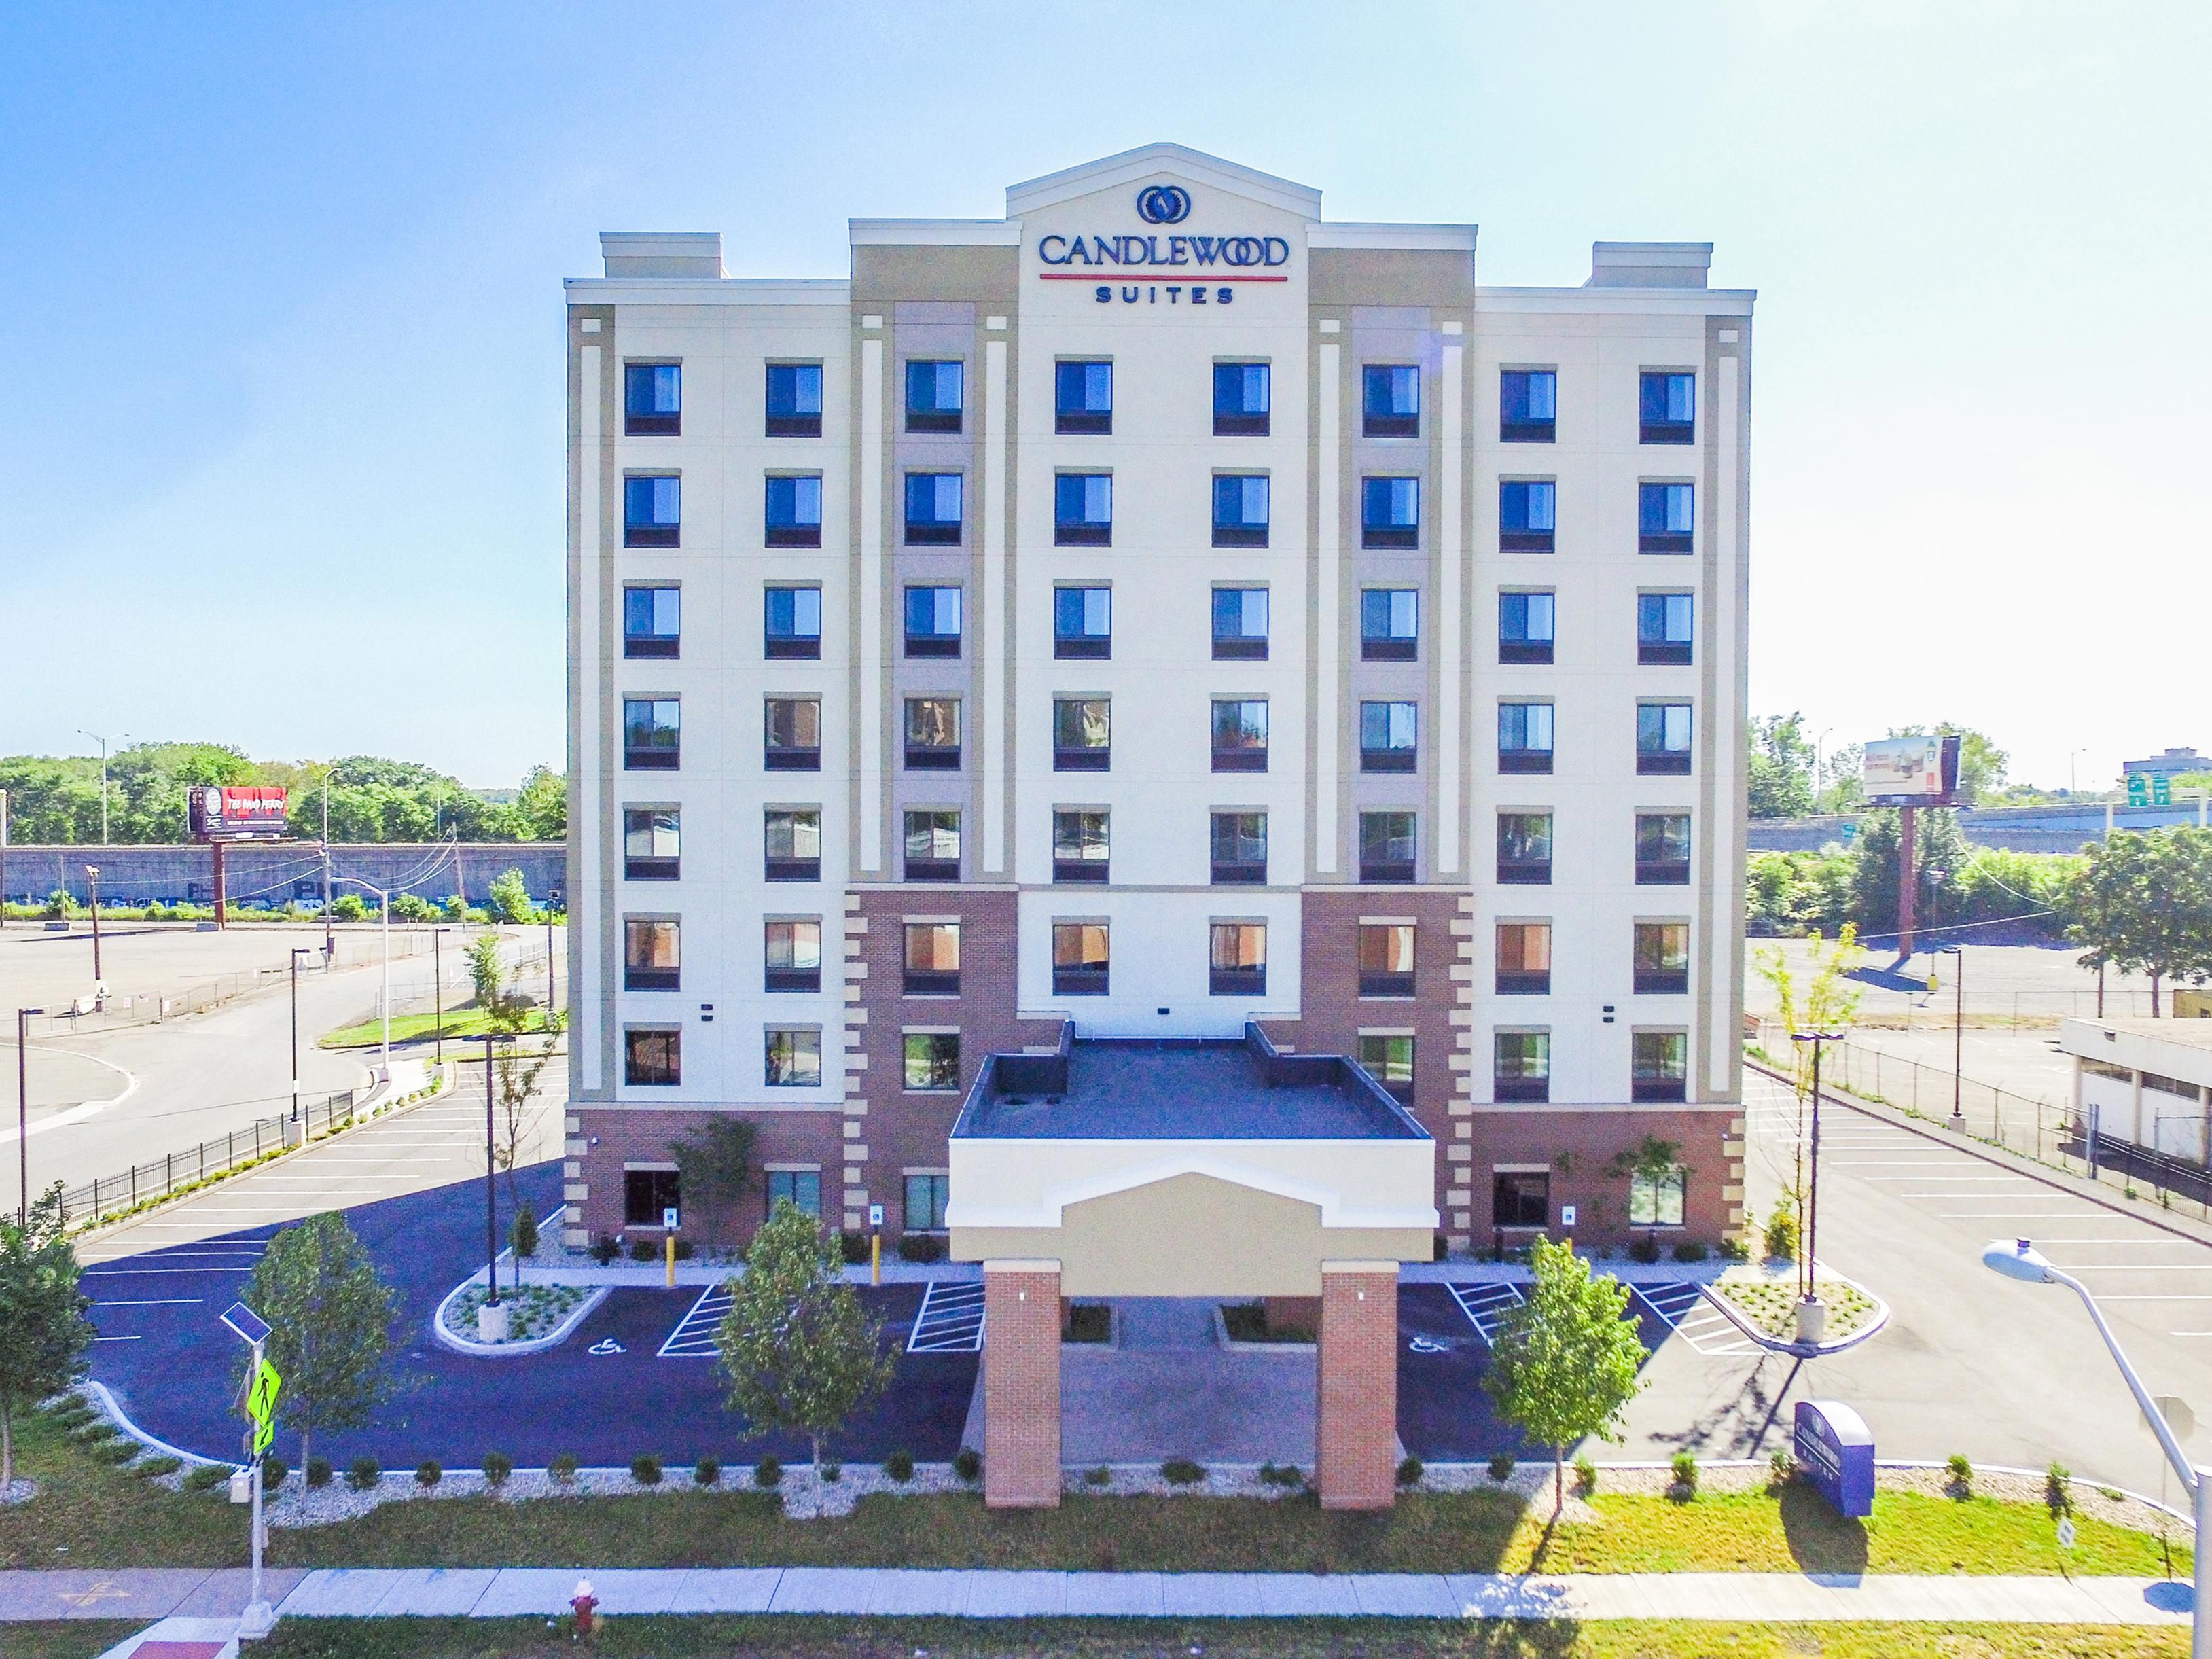 Candlewood Suites Hartford Downtown In West Springfield Machusetts